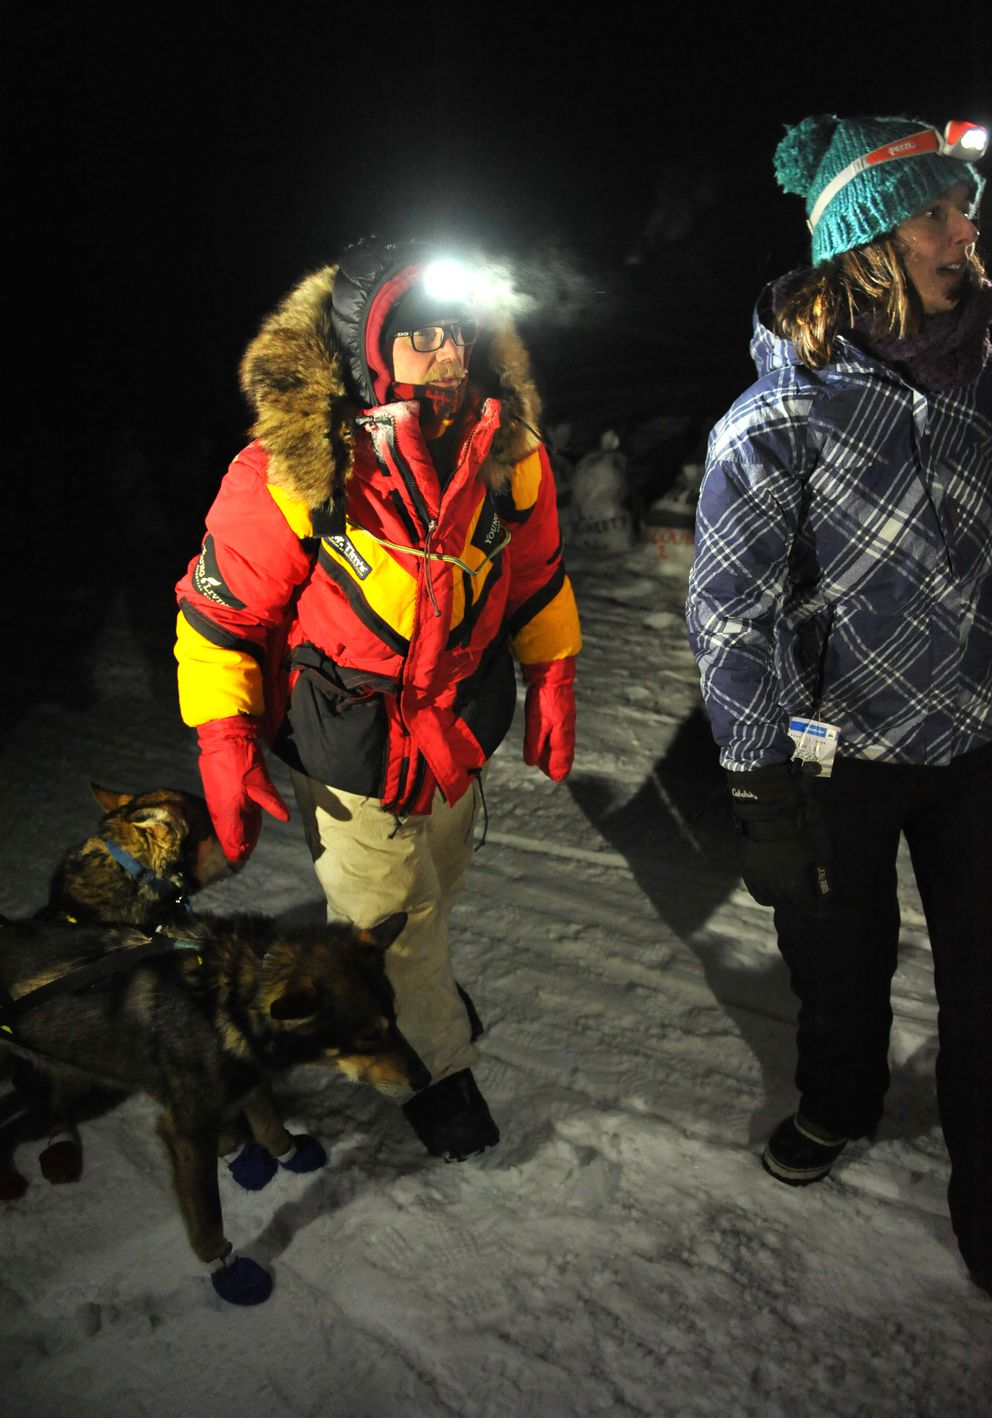 Mitch Seavey looks for his parking spot after arriving in White Mountain in first place during the 2017 Iditarod Trail Sled Dog Race on Monday. (Bob Hallinen / Alaska Dispatch News)